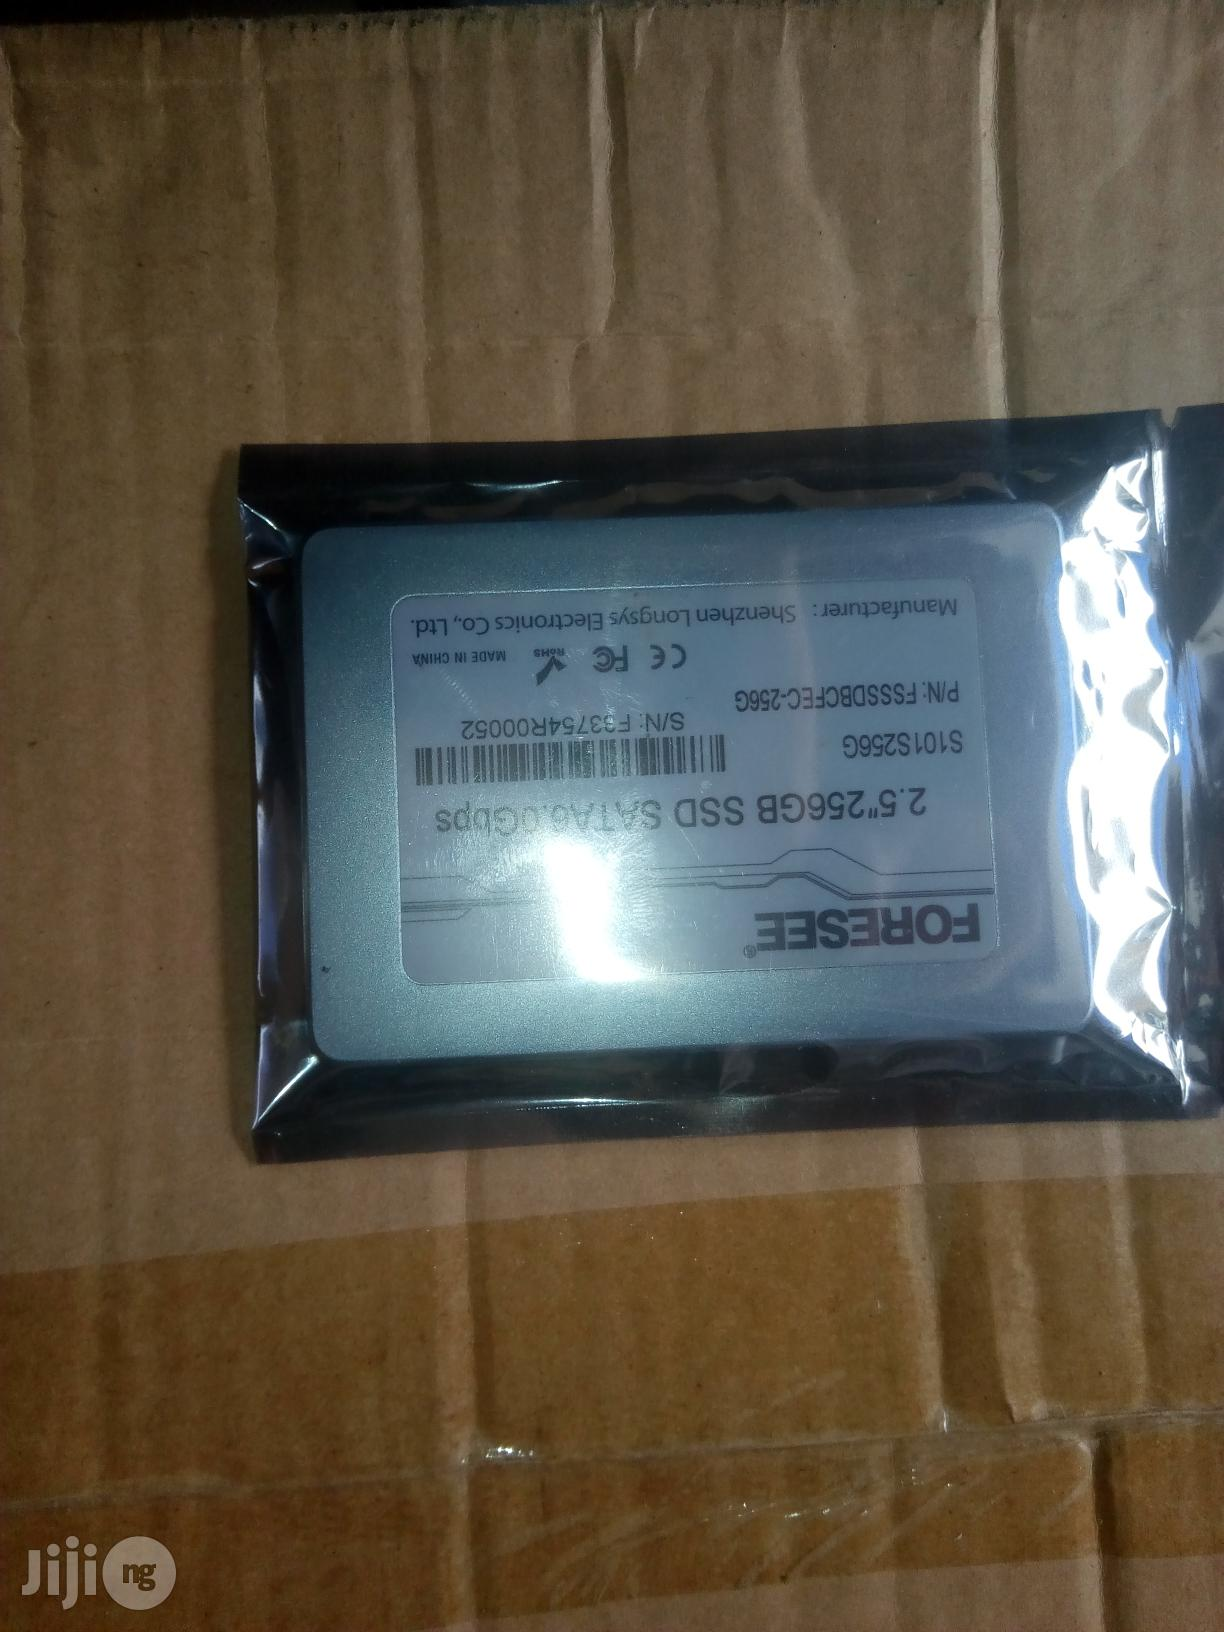 Archive: Solid State Drive 2.5-inch 256GB SATA III MLC Internal Solid State Drive (SSD)